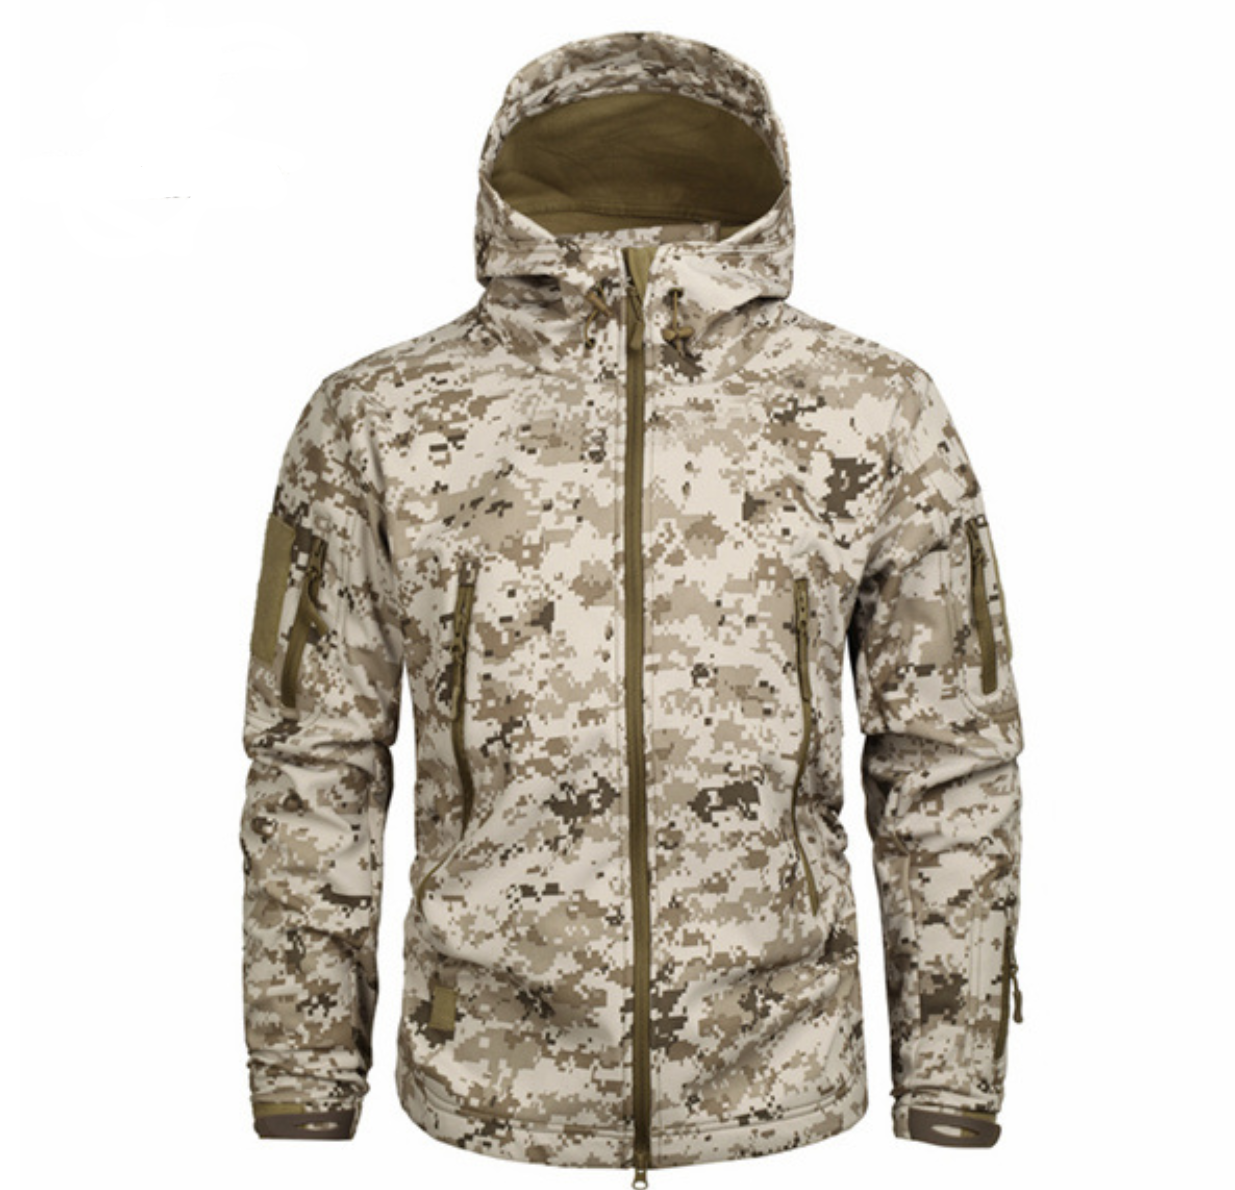 Fortified Tactical Jacket